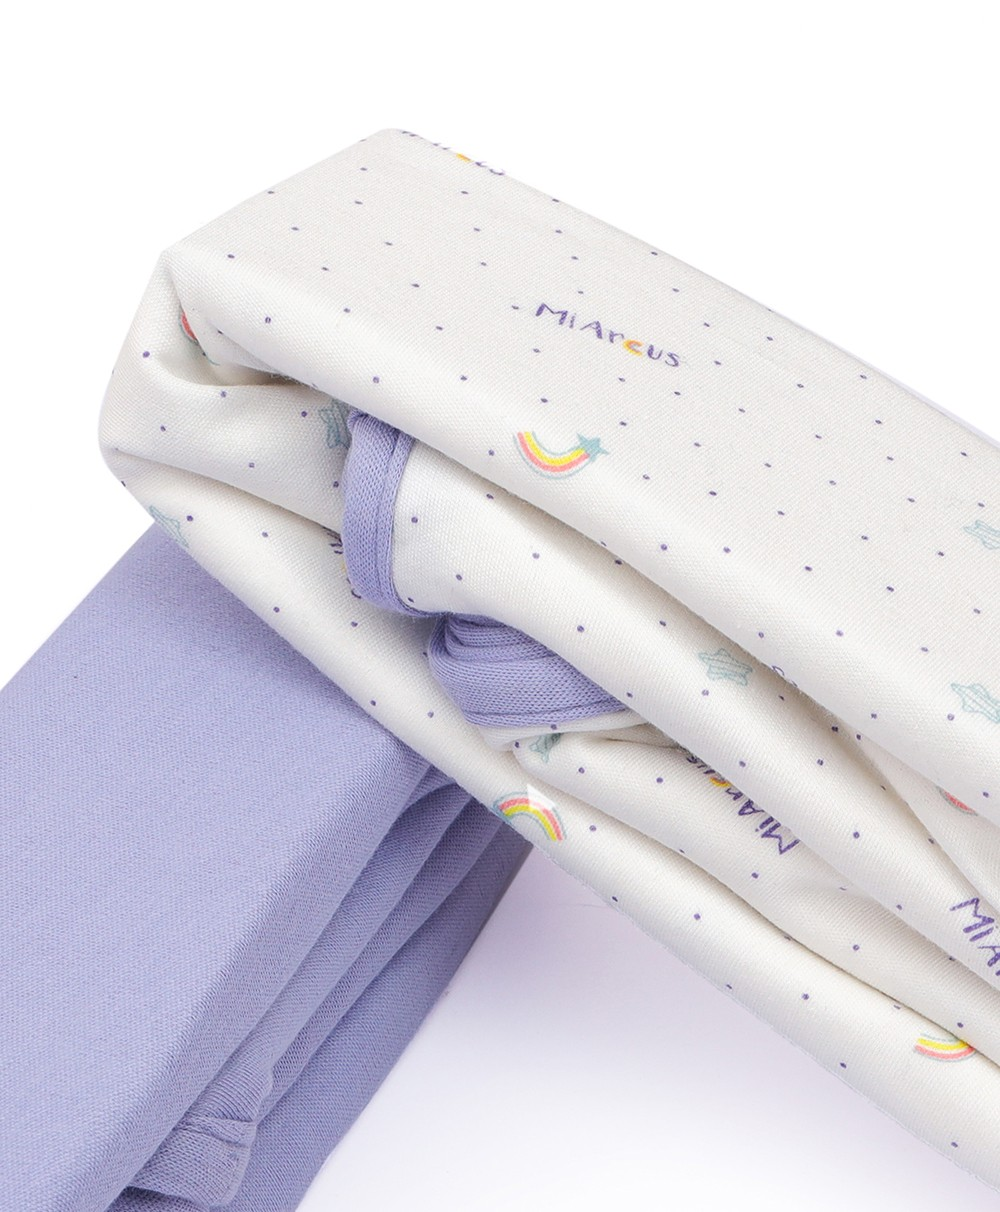 Sleepy First Layer Sheet - Arcus ( Pack of 2)